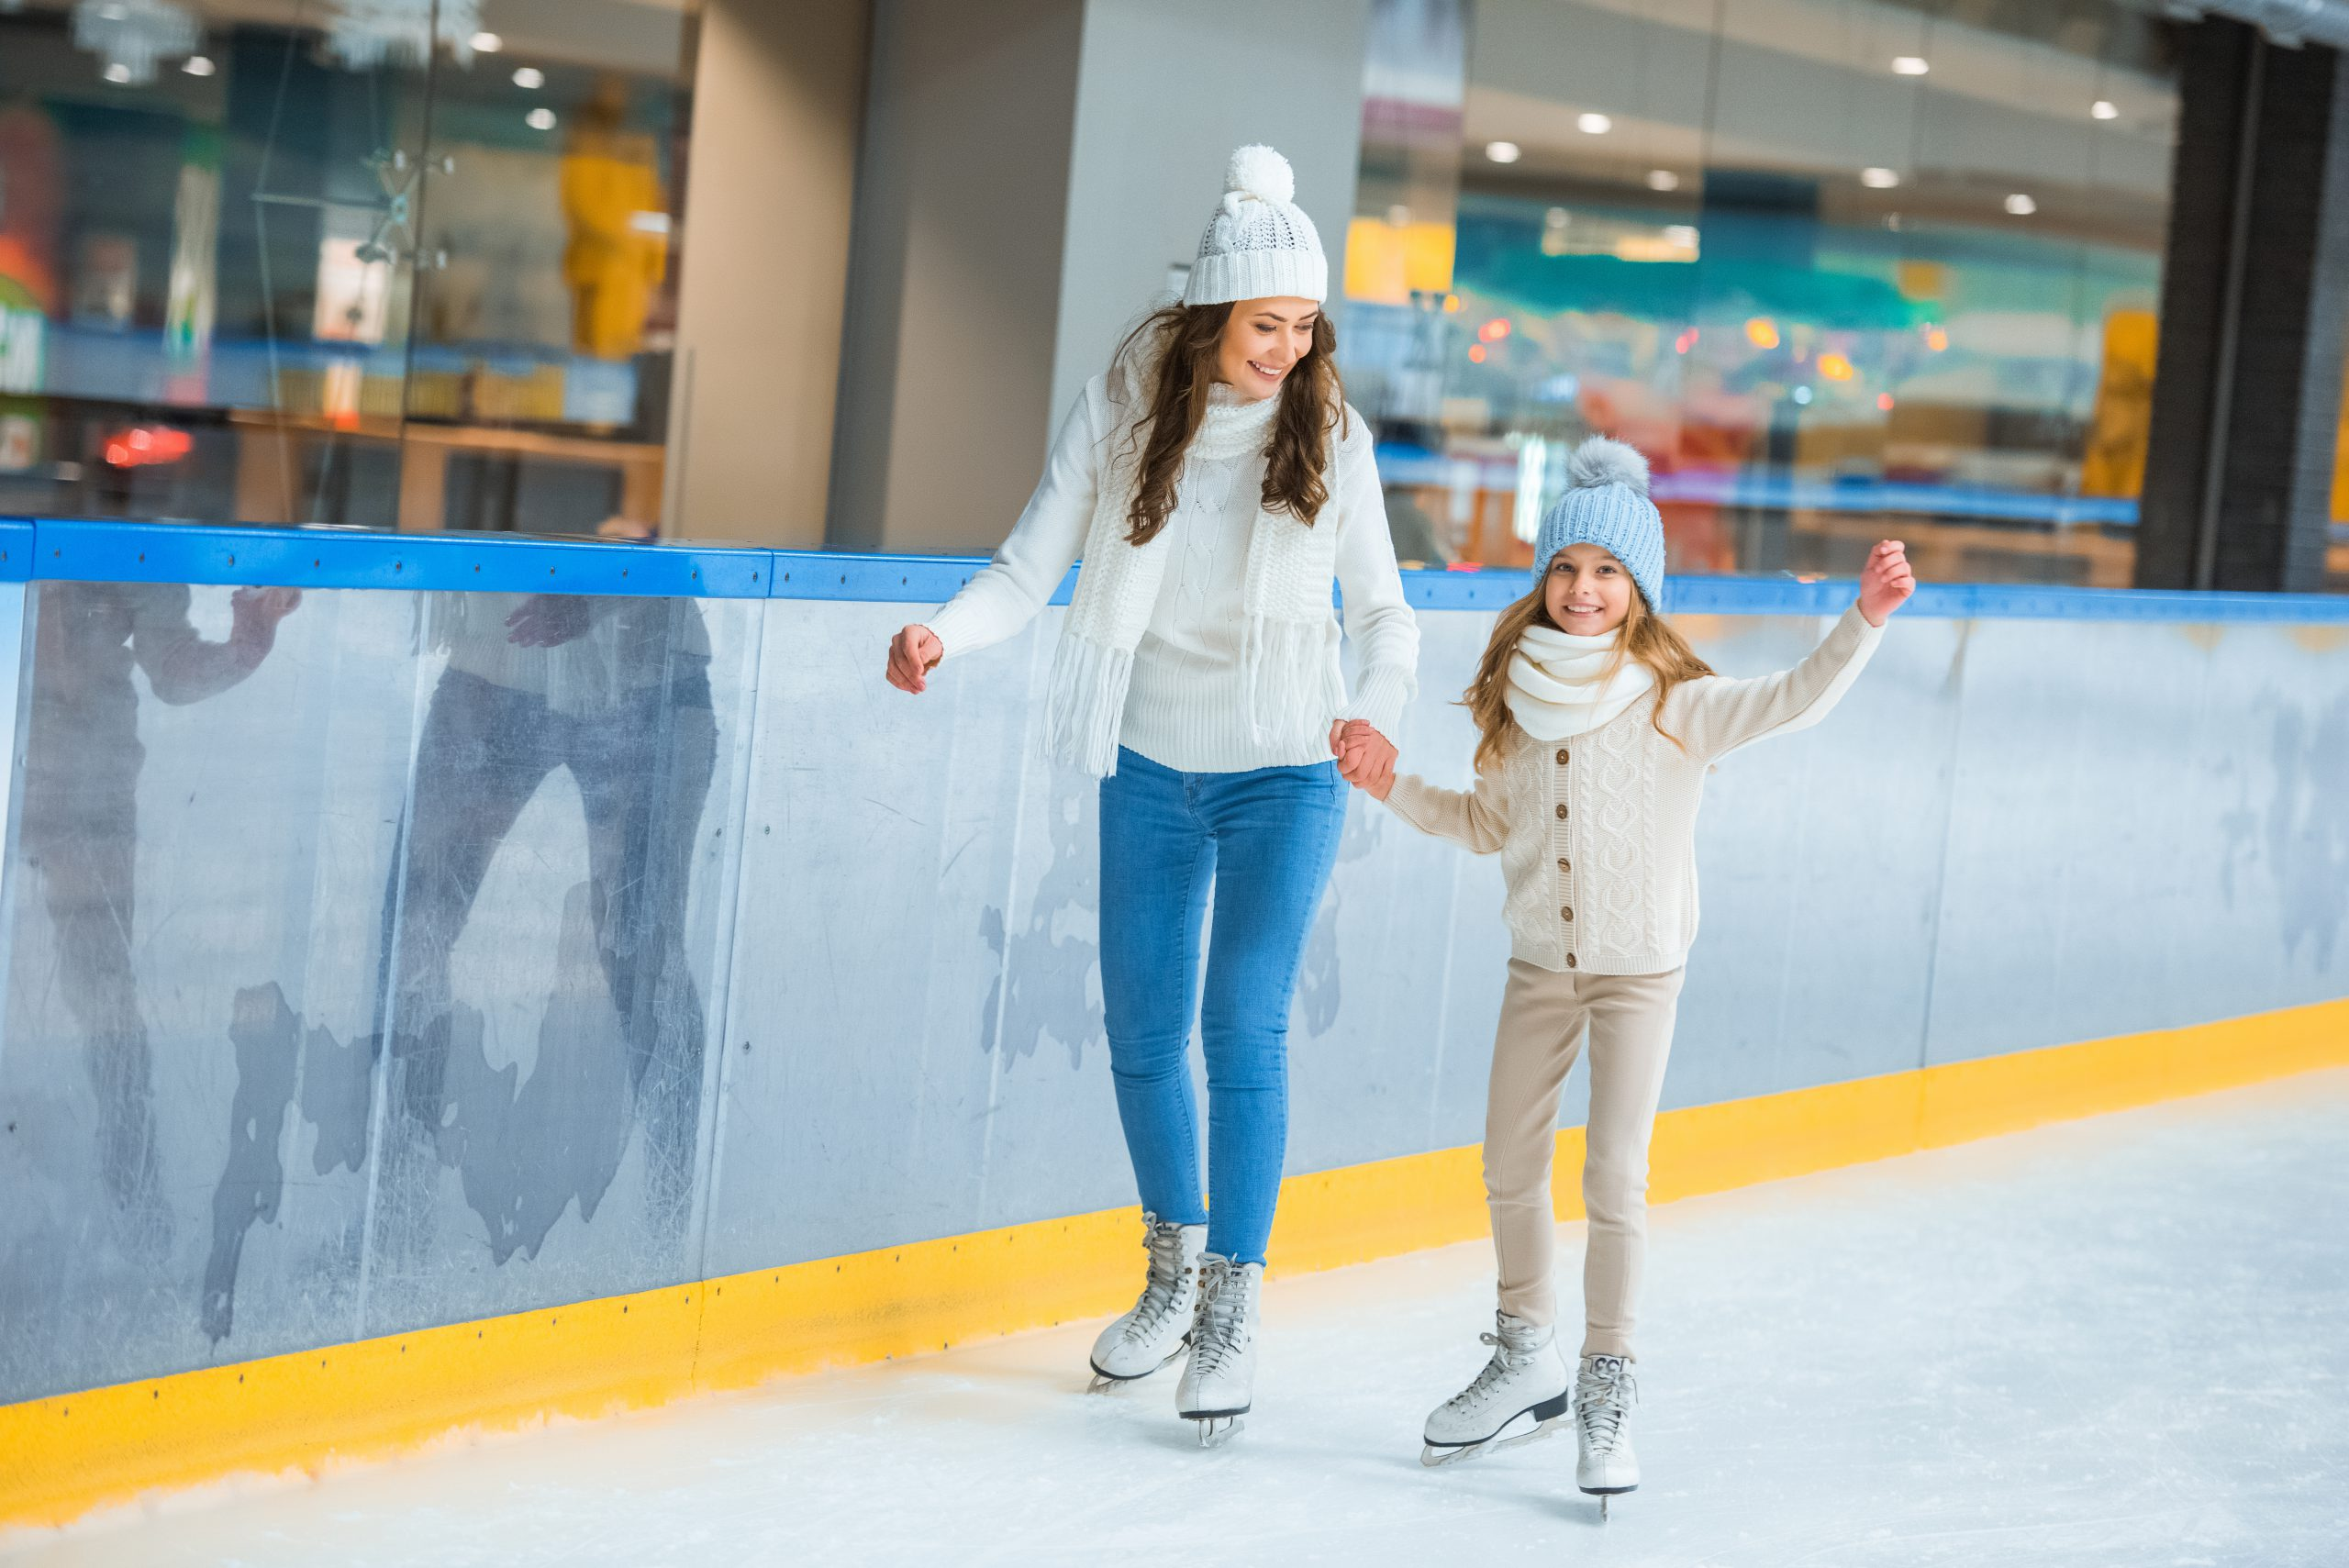 Mother and daughter skating on ice